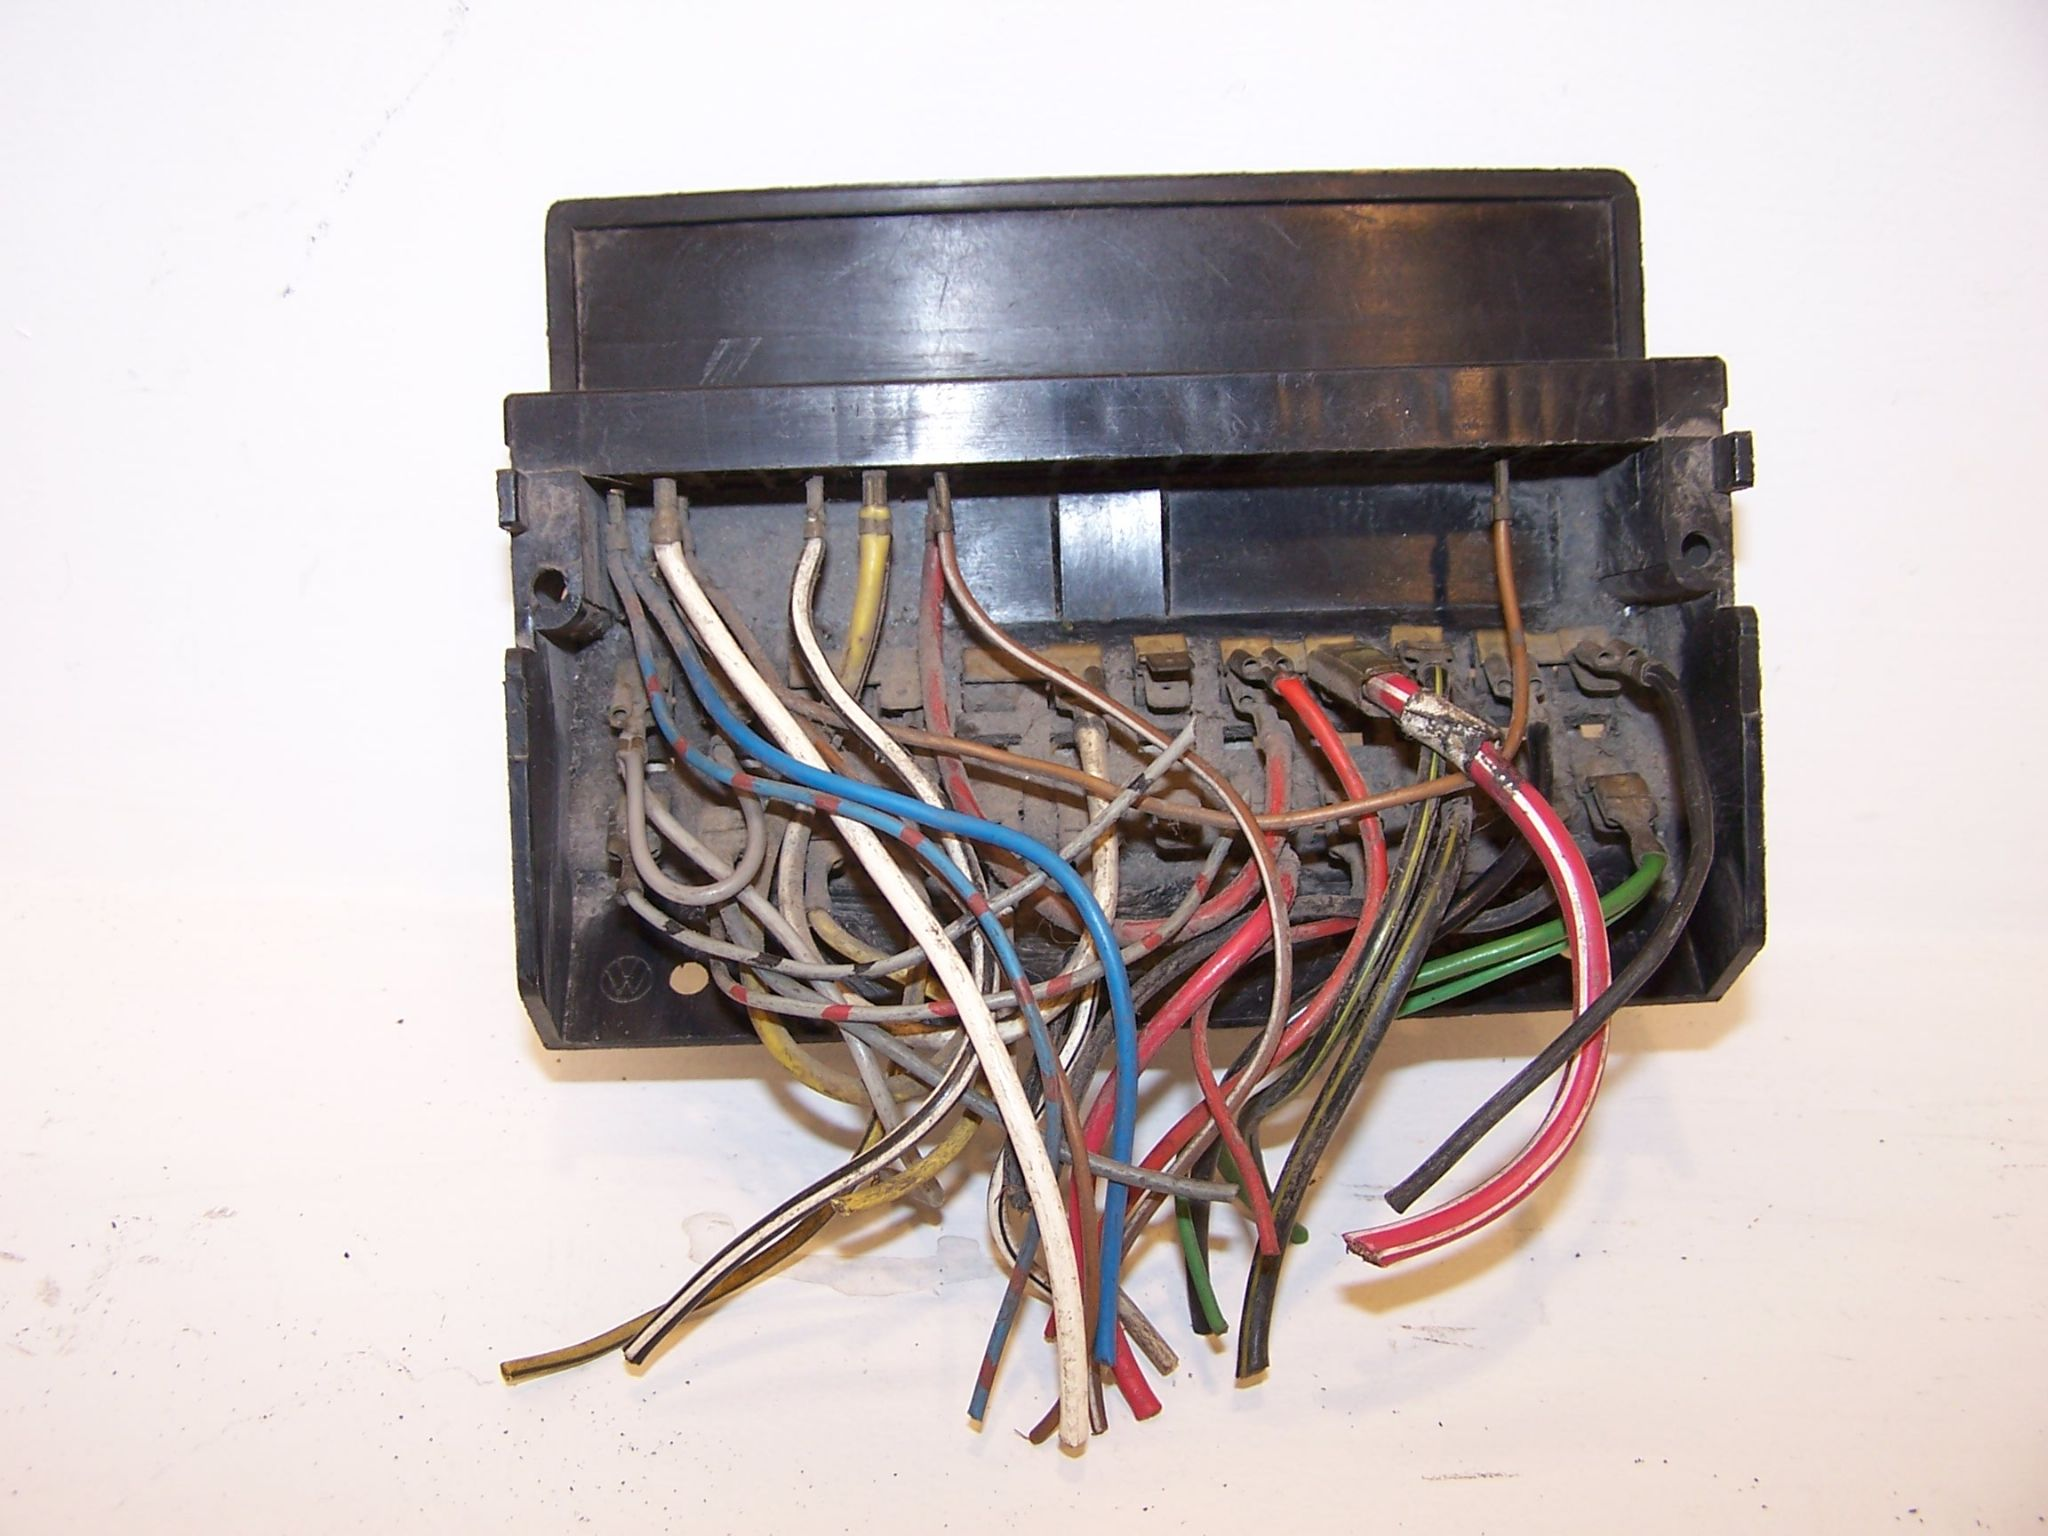 Fuse Box In Vw Beetle Free Wiring Diagram For You 1974 Super 1303 Type 2 1979 2013 2000